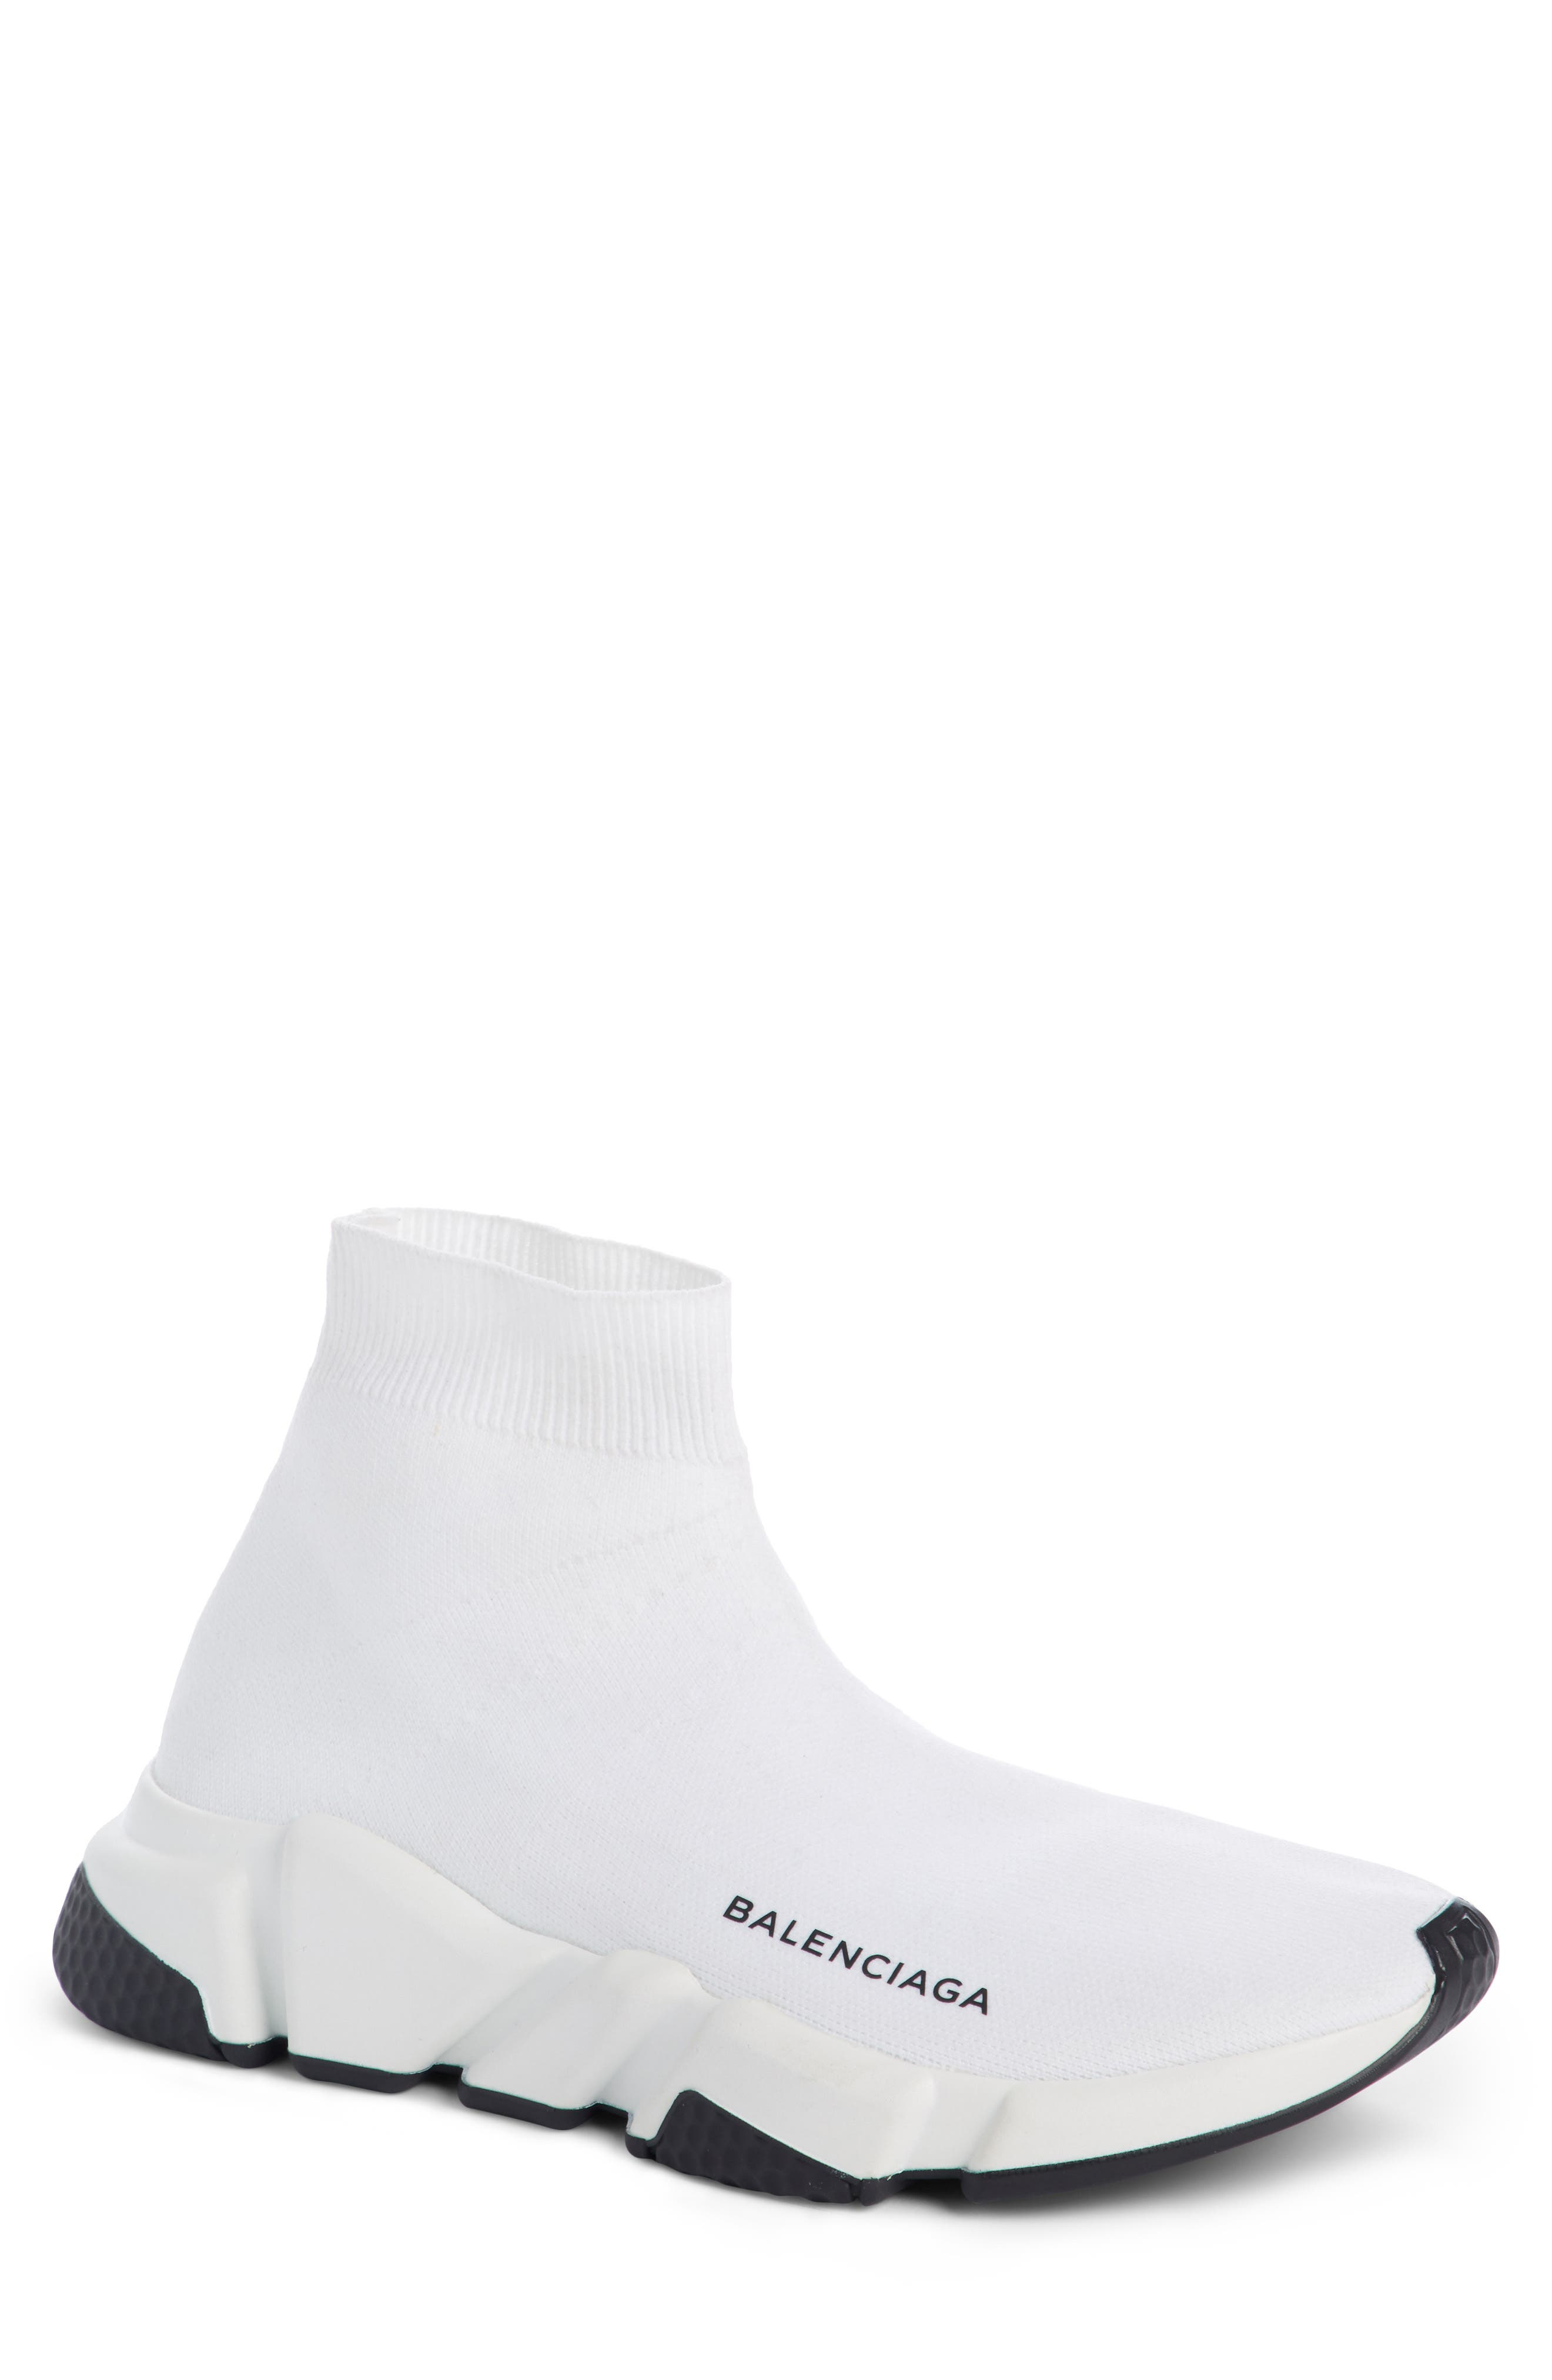 Speed Mid Sneaker,                         Main,                         color, White